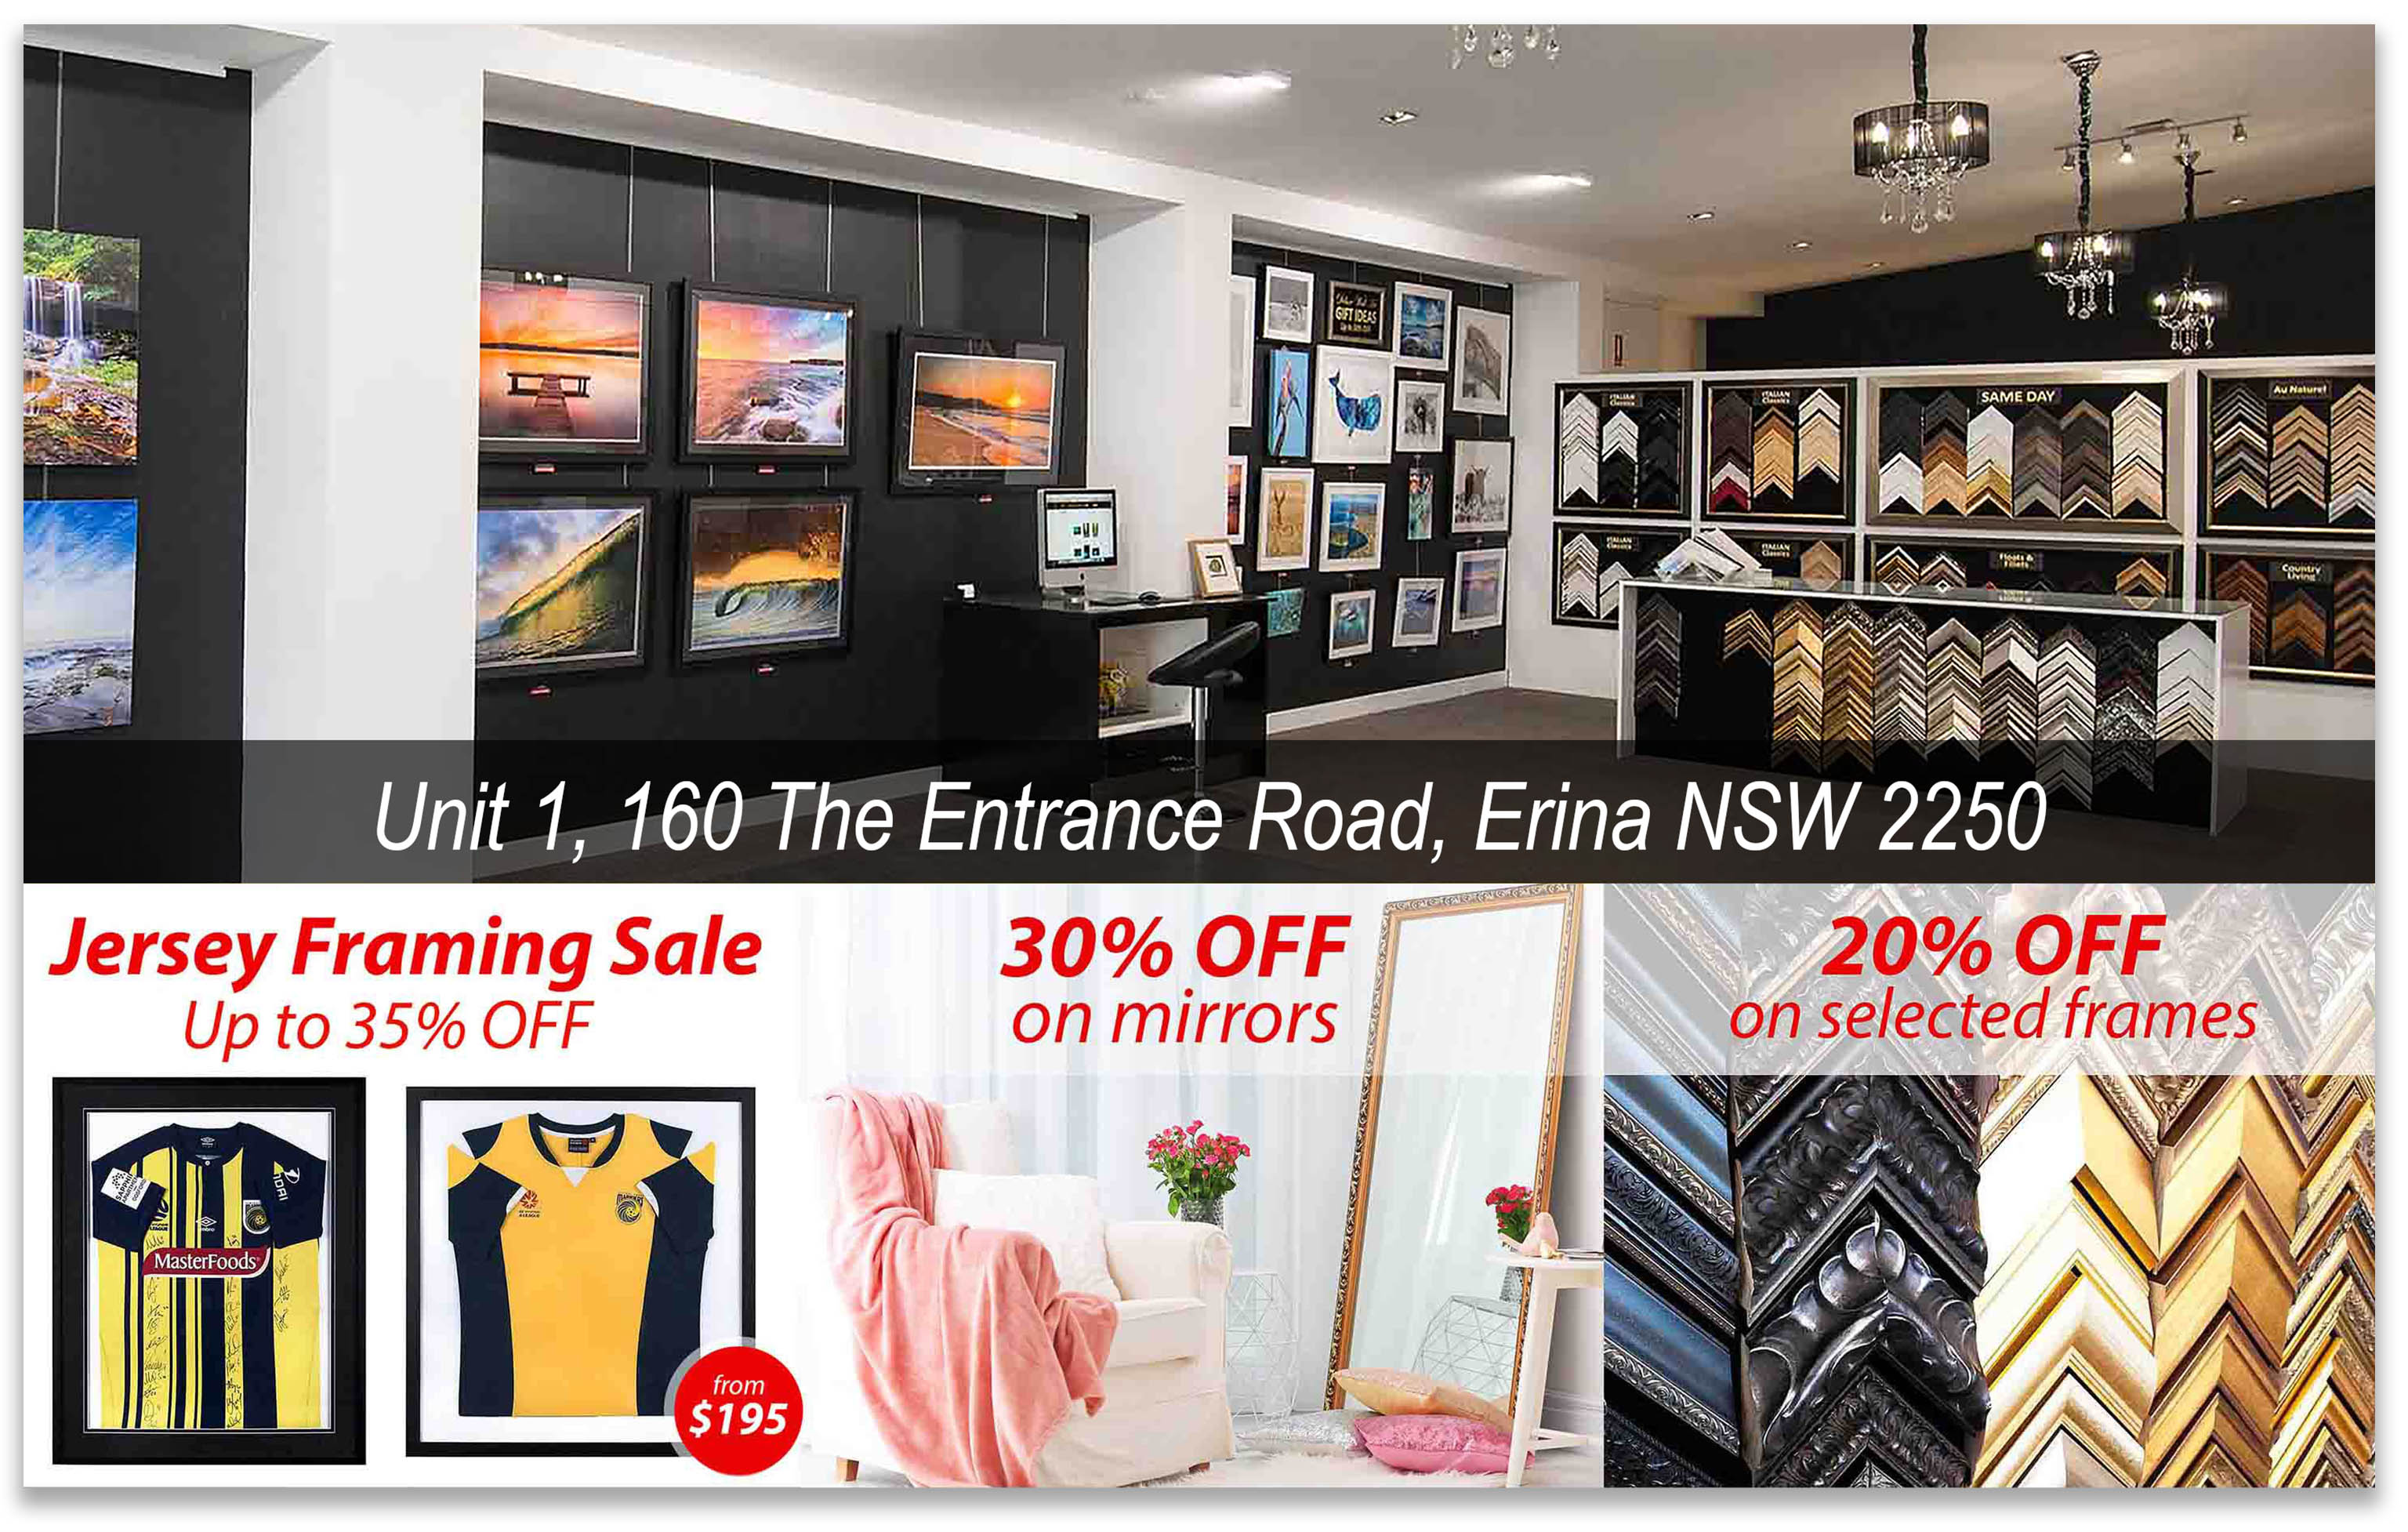 Picture Framing Central Coast Picture Framing Erina Mar20.v2